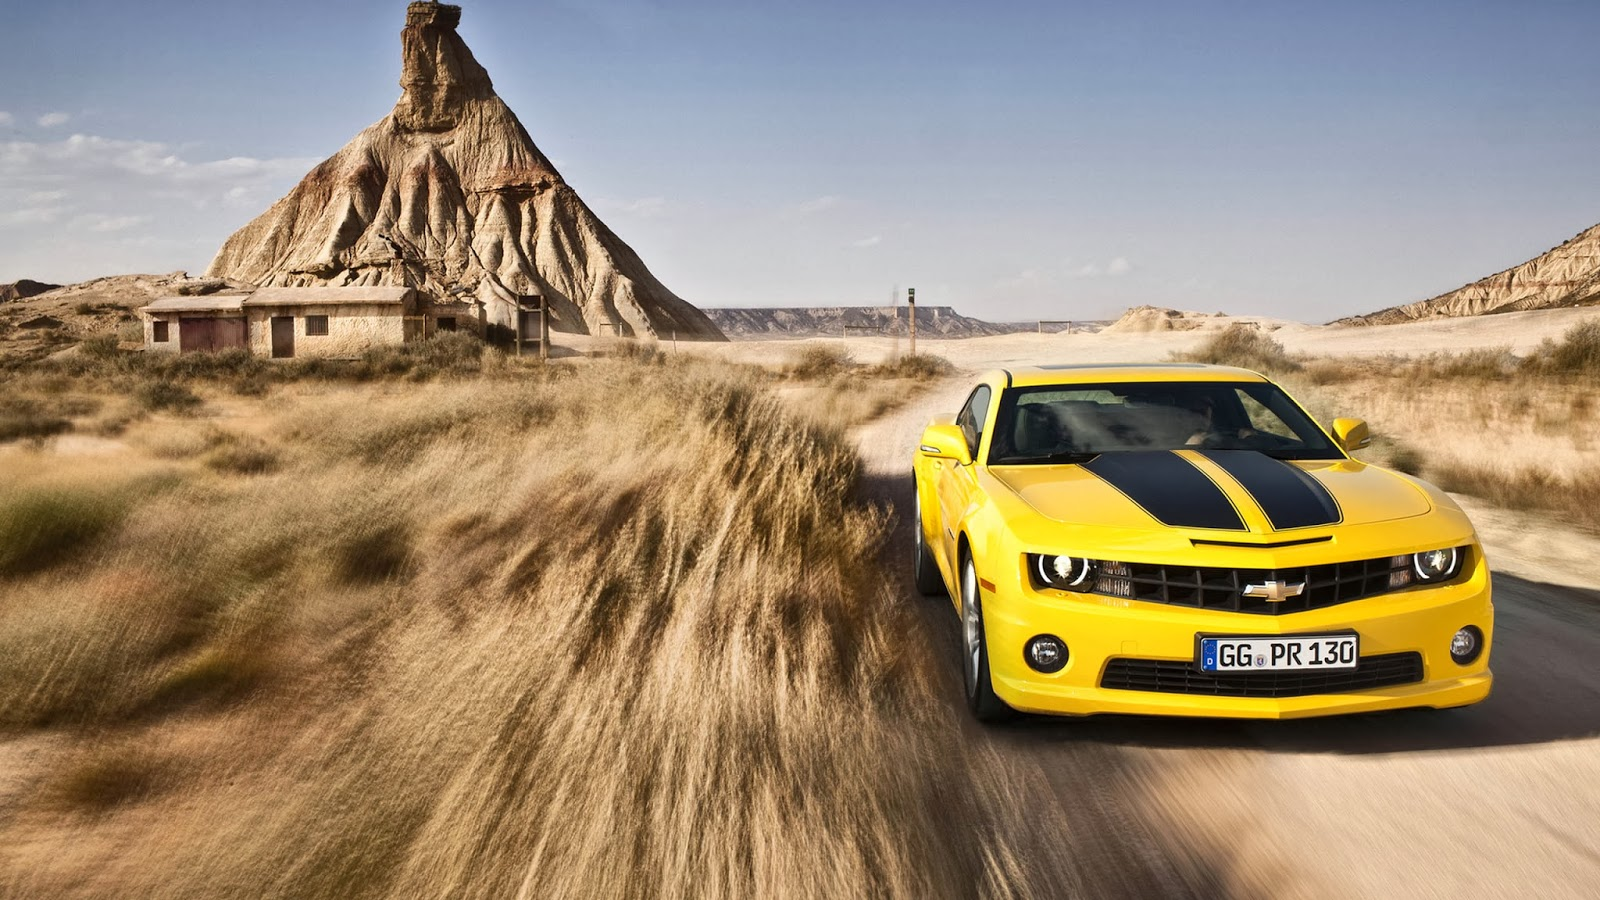 Car wallpapers hd for windows 7 Gallery (59 images)